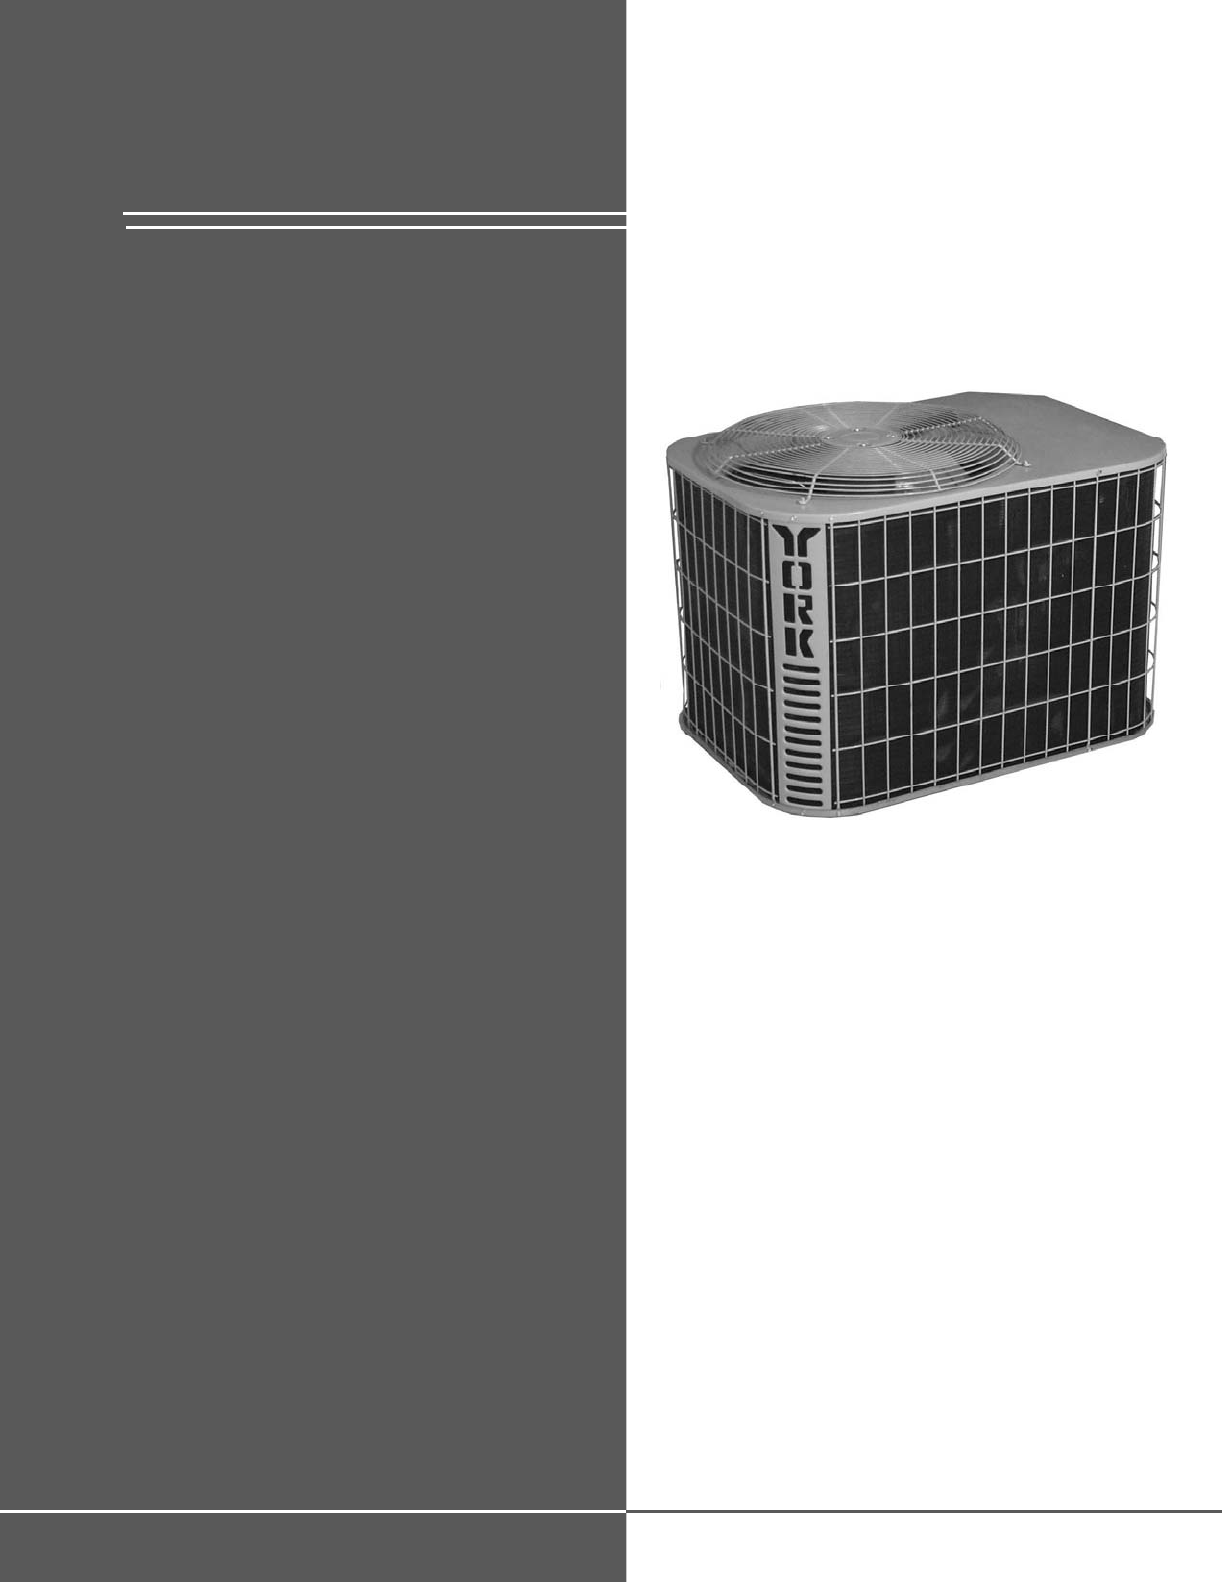 #363636 York Air Conditioner 10 User Guide ManualsOnline.com Best 9793 York Air Conditioner Installation Manual photos with 1222x1582 px on helpvideos.info - Air Conditioners, Air Coolers and more